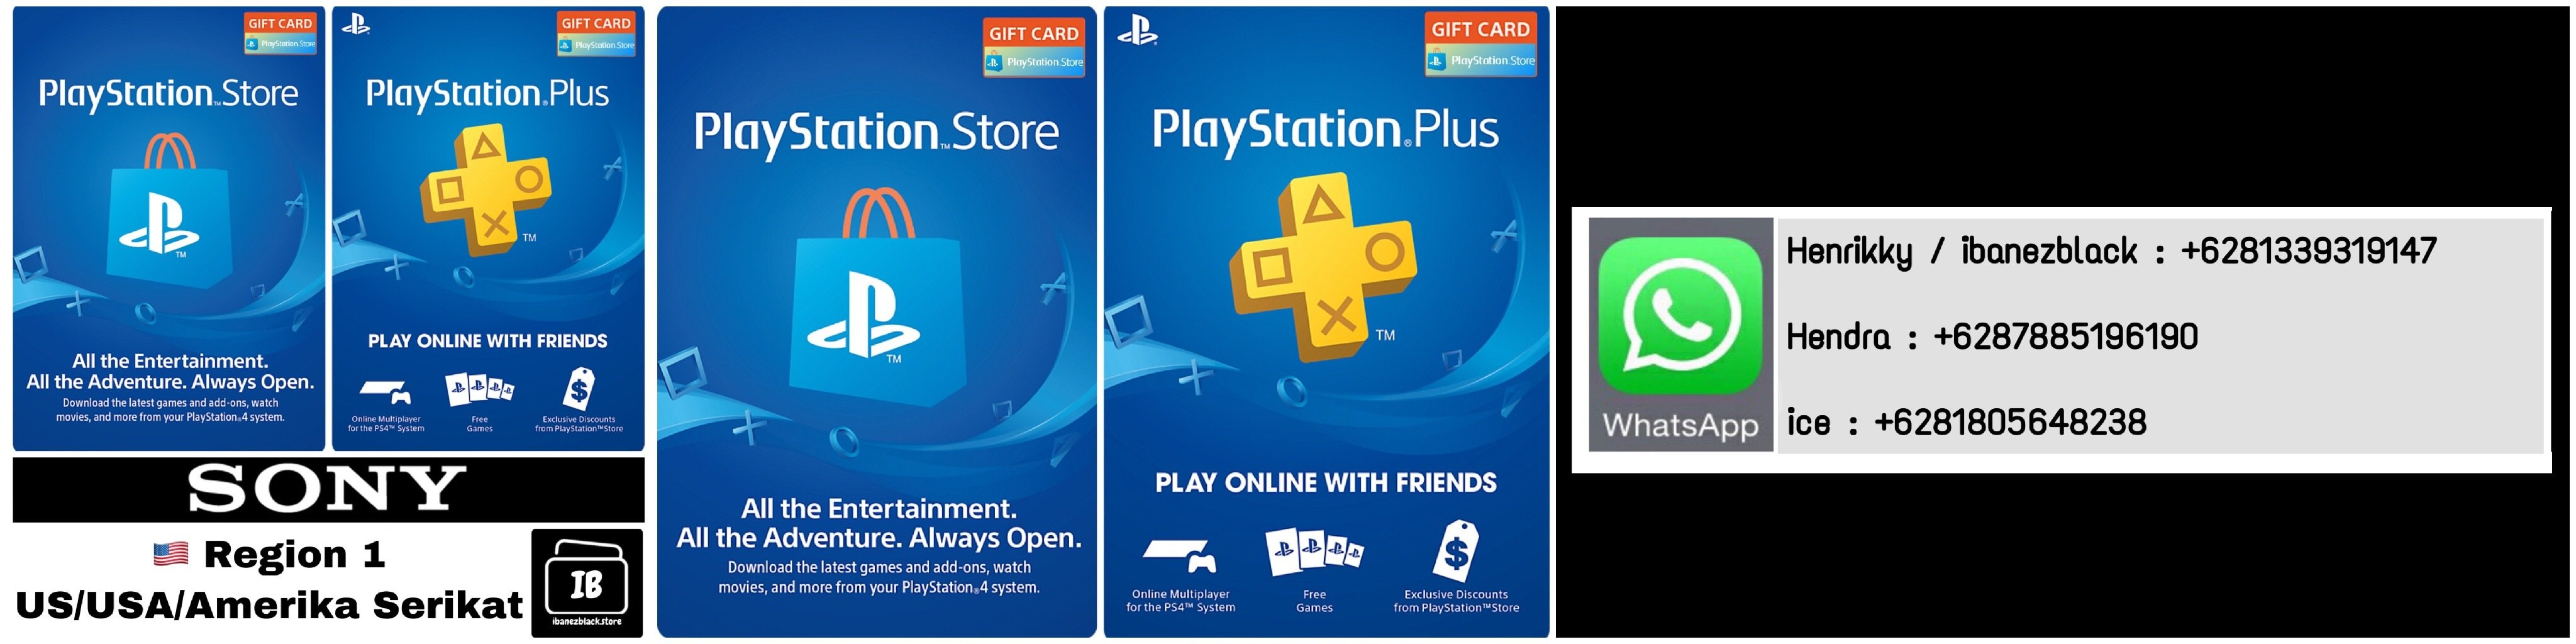 Playstation Store Gift Card (PSN Card) / Playstation Plus (PSN Plus) US